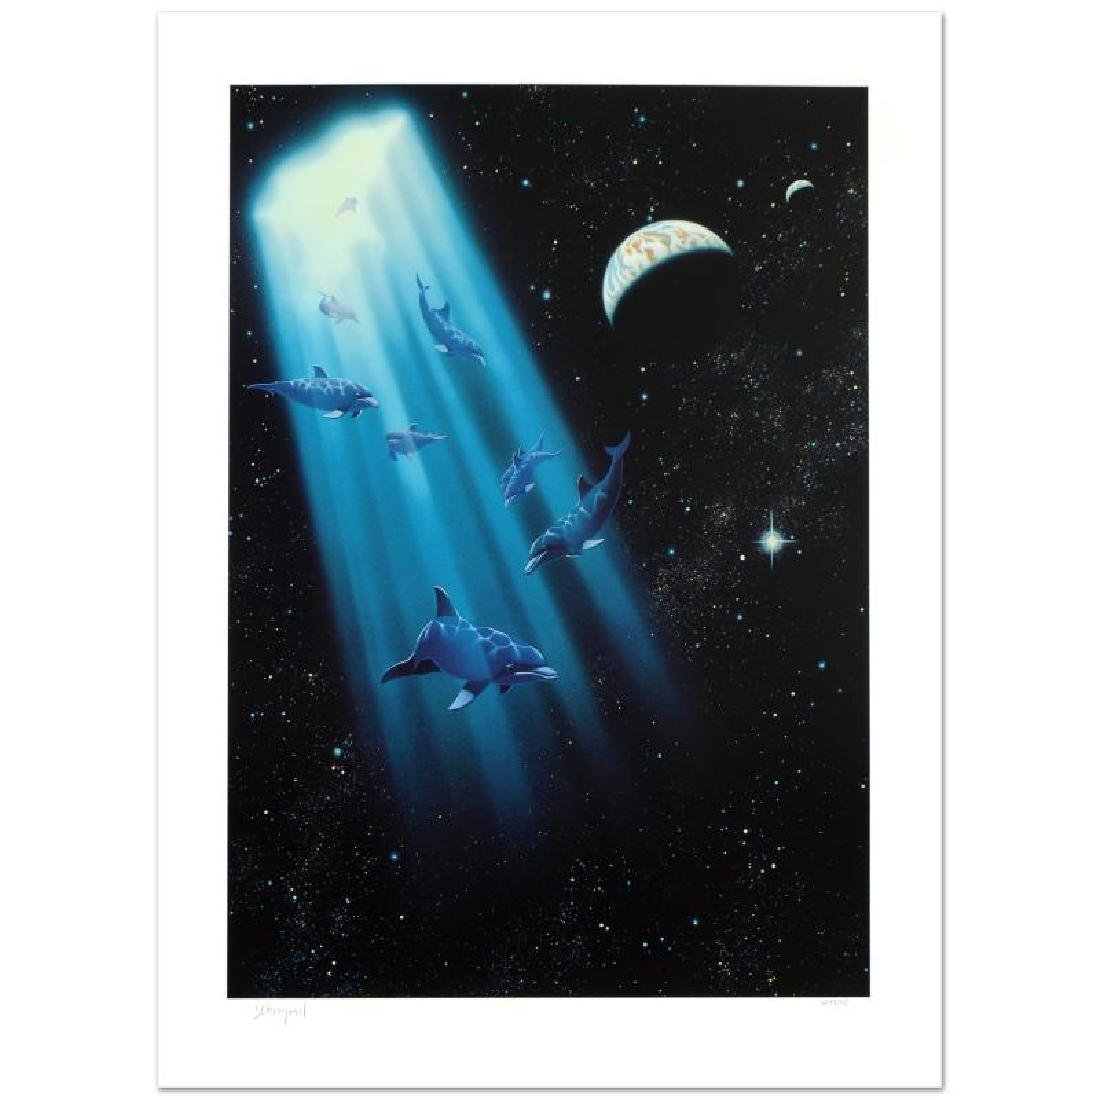 Conception Limited Edition Giclee by William Schimmel